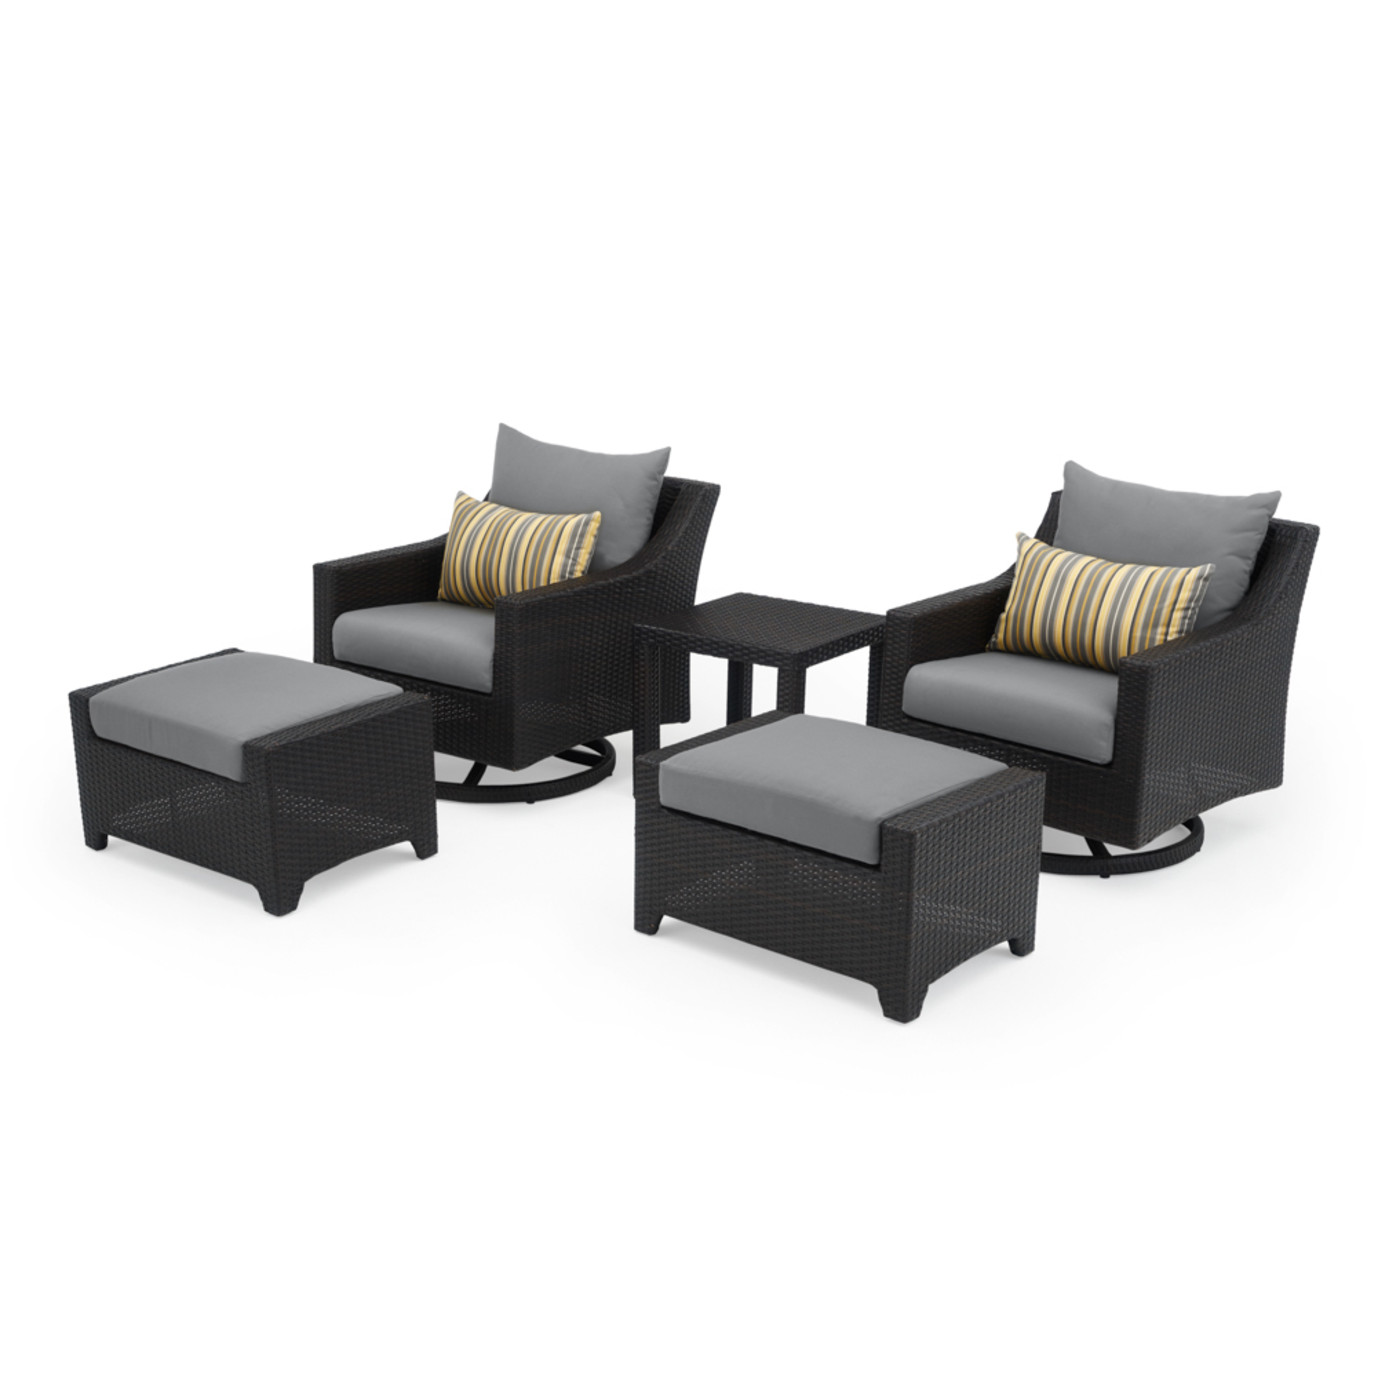 Deco 5pc Motion Club & Ottoman Set - Charcoal Gray